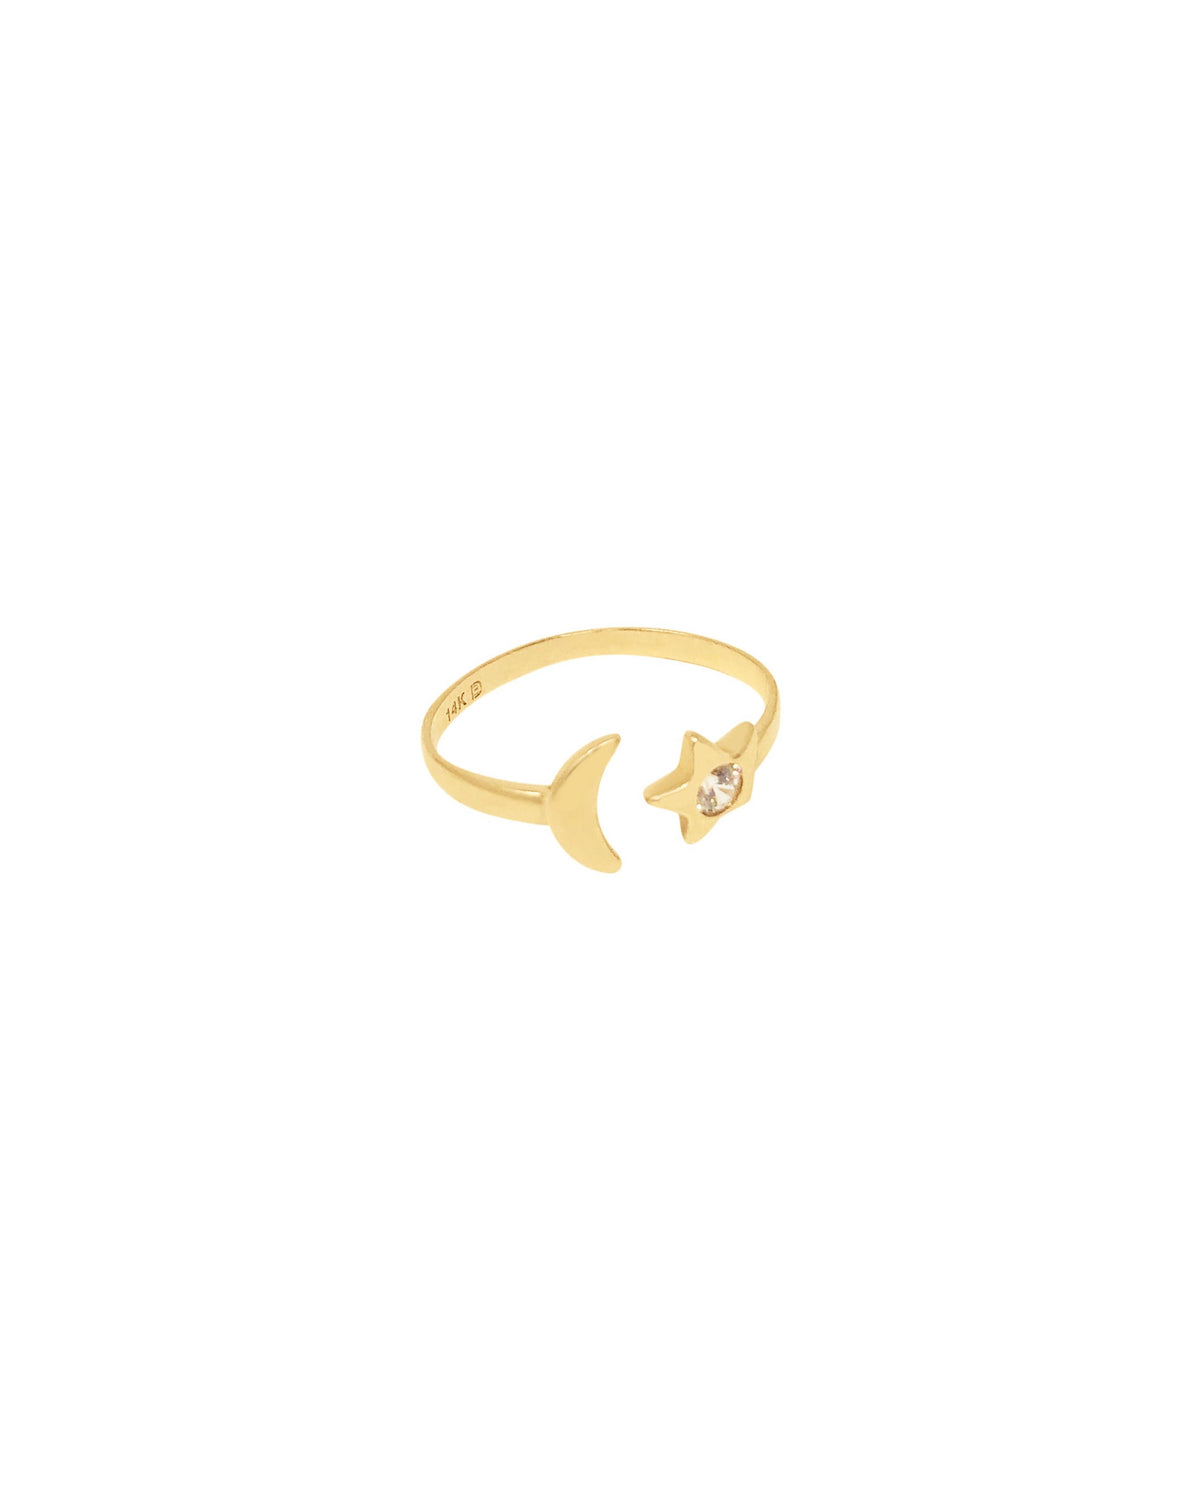 MOON AND STAR RING in 14K Gold